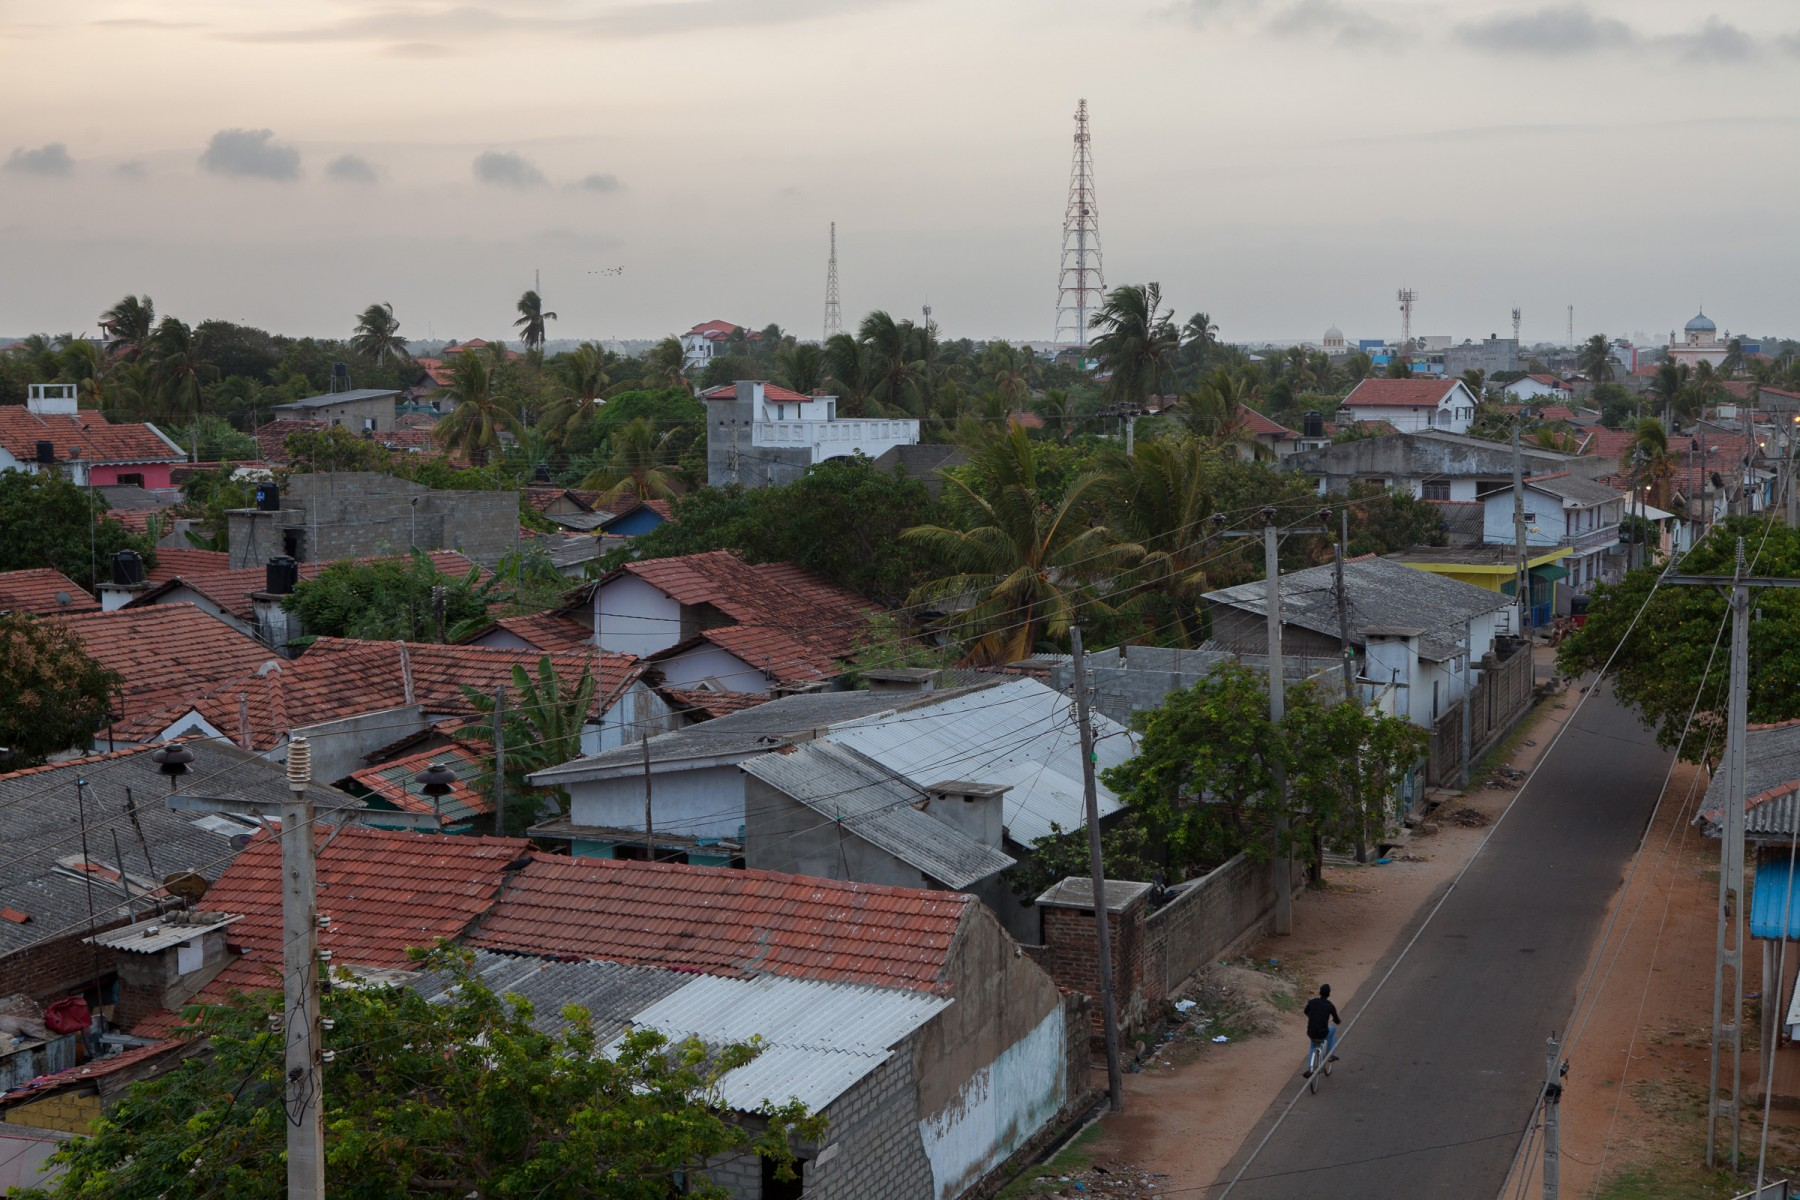 Backstreets of Puttallam on Sri Lanka's west coast.